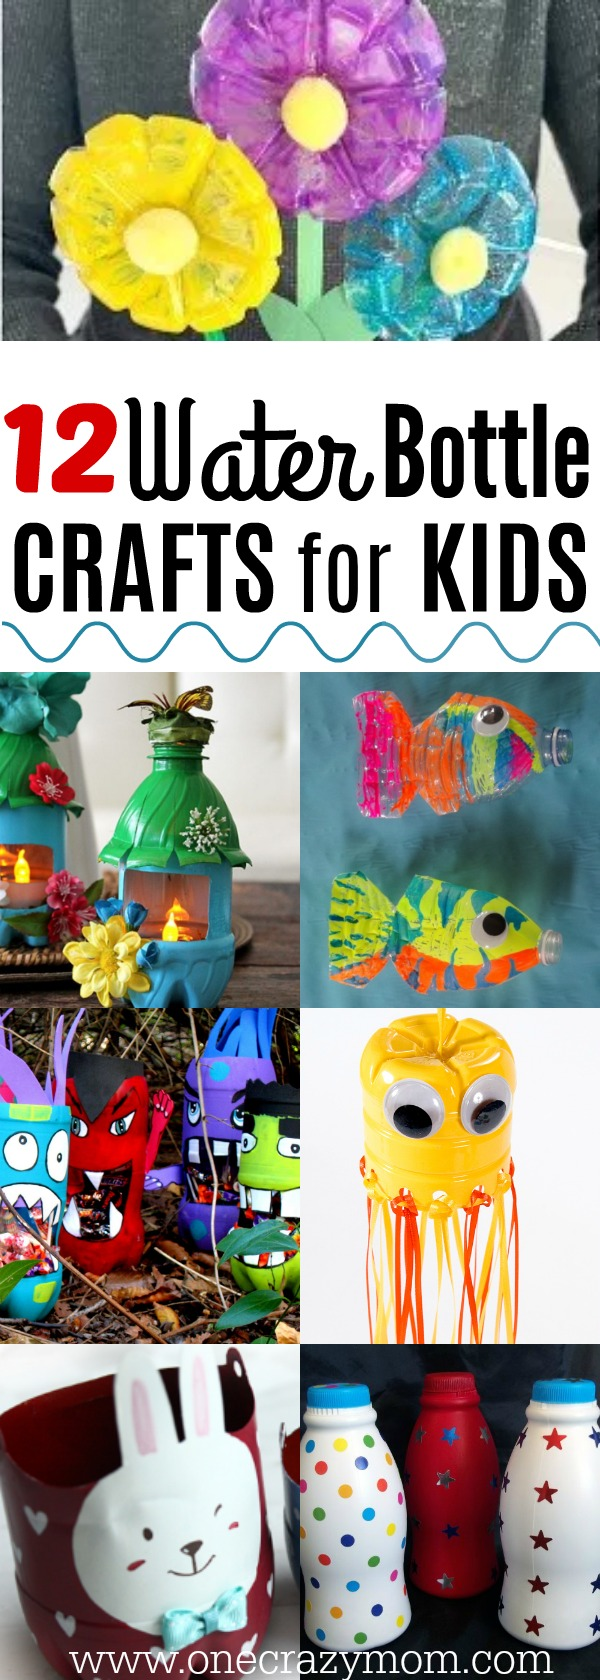 Find water bottle craft ideas for kids. 12 plastic bottle craft ideas for kids. They will love these water bottle crafts to keep them busy.